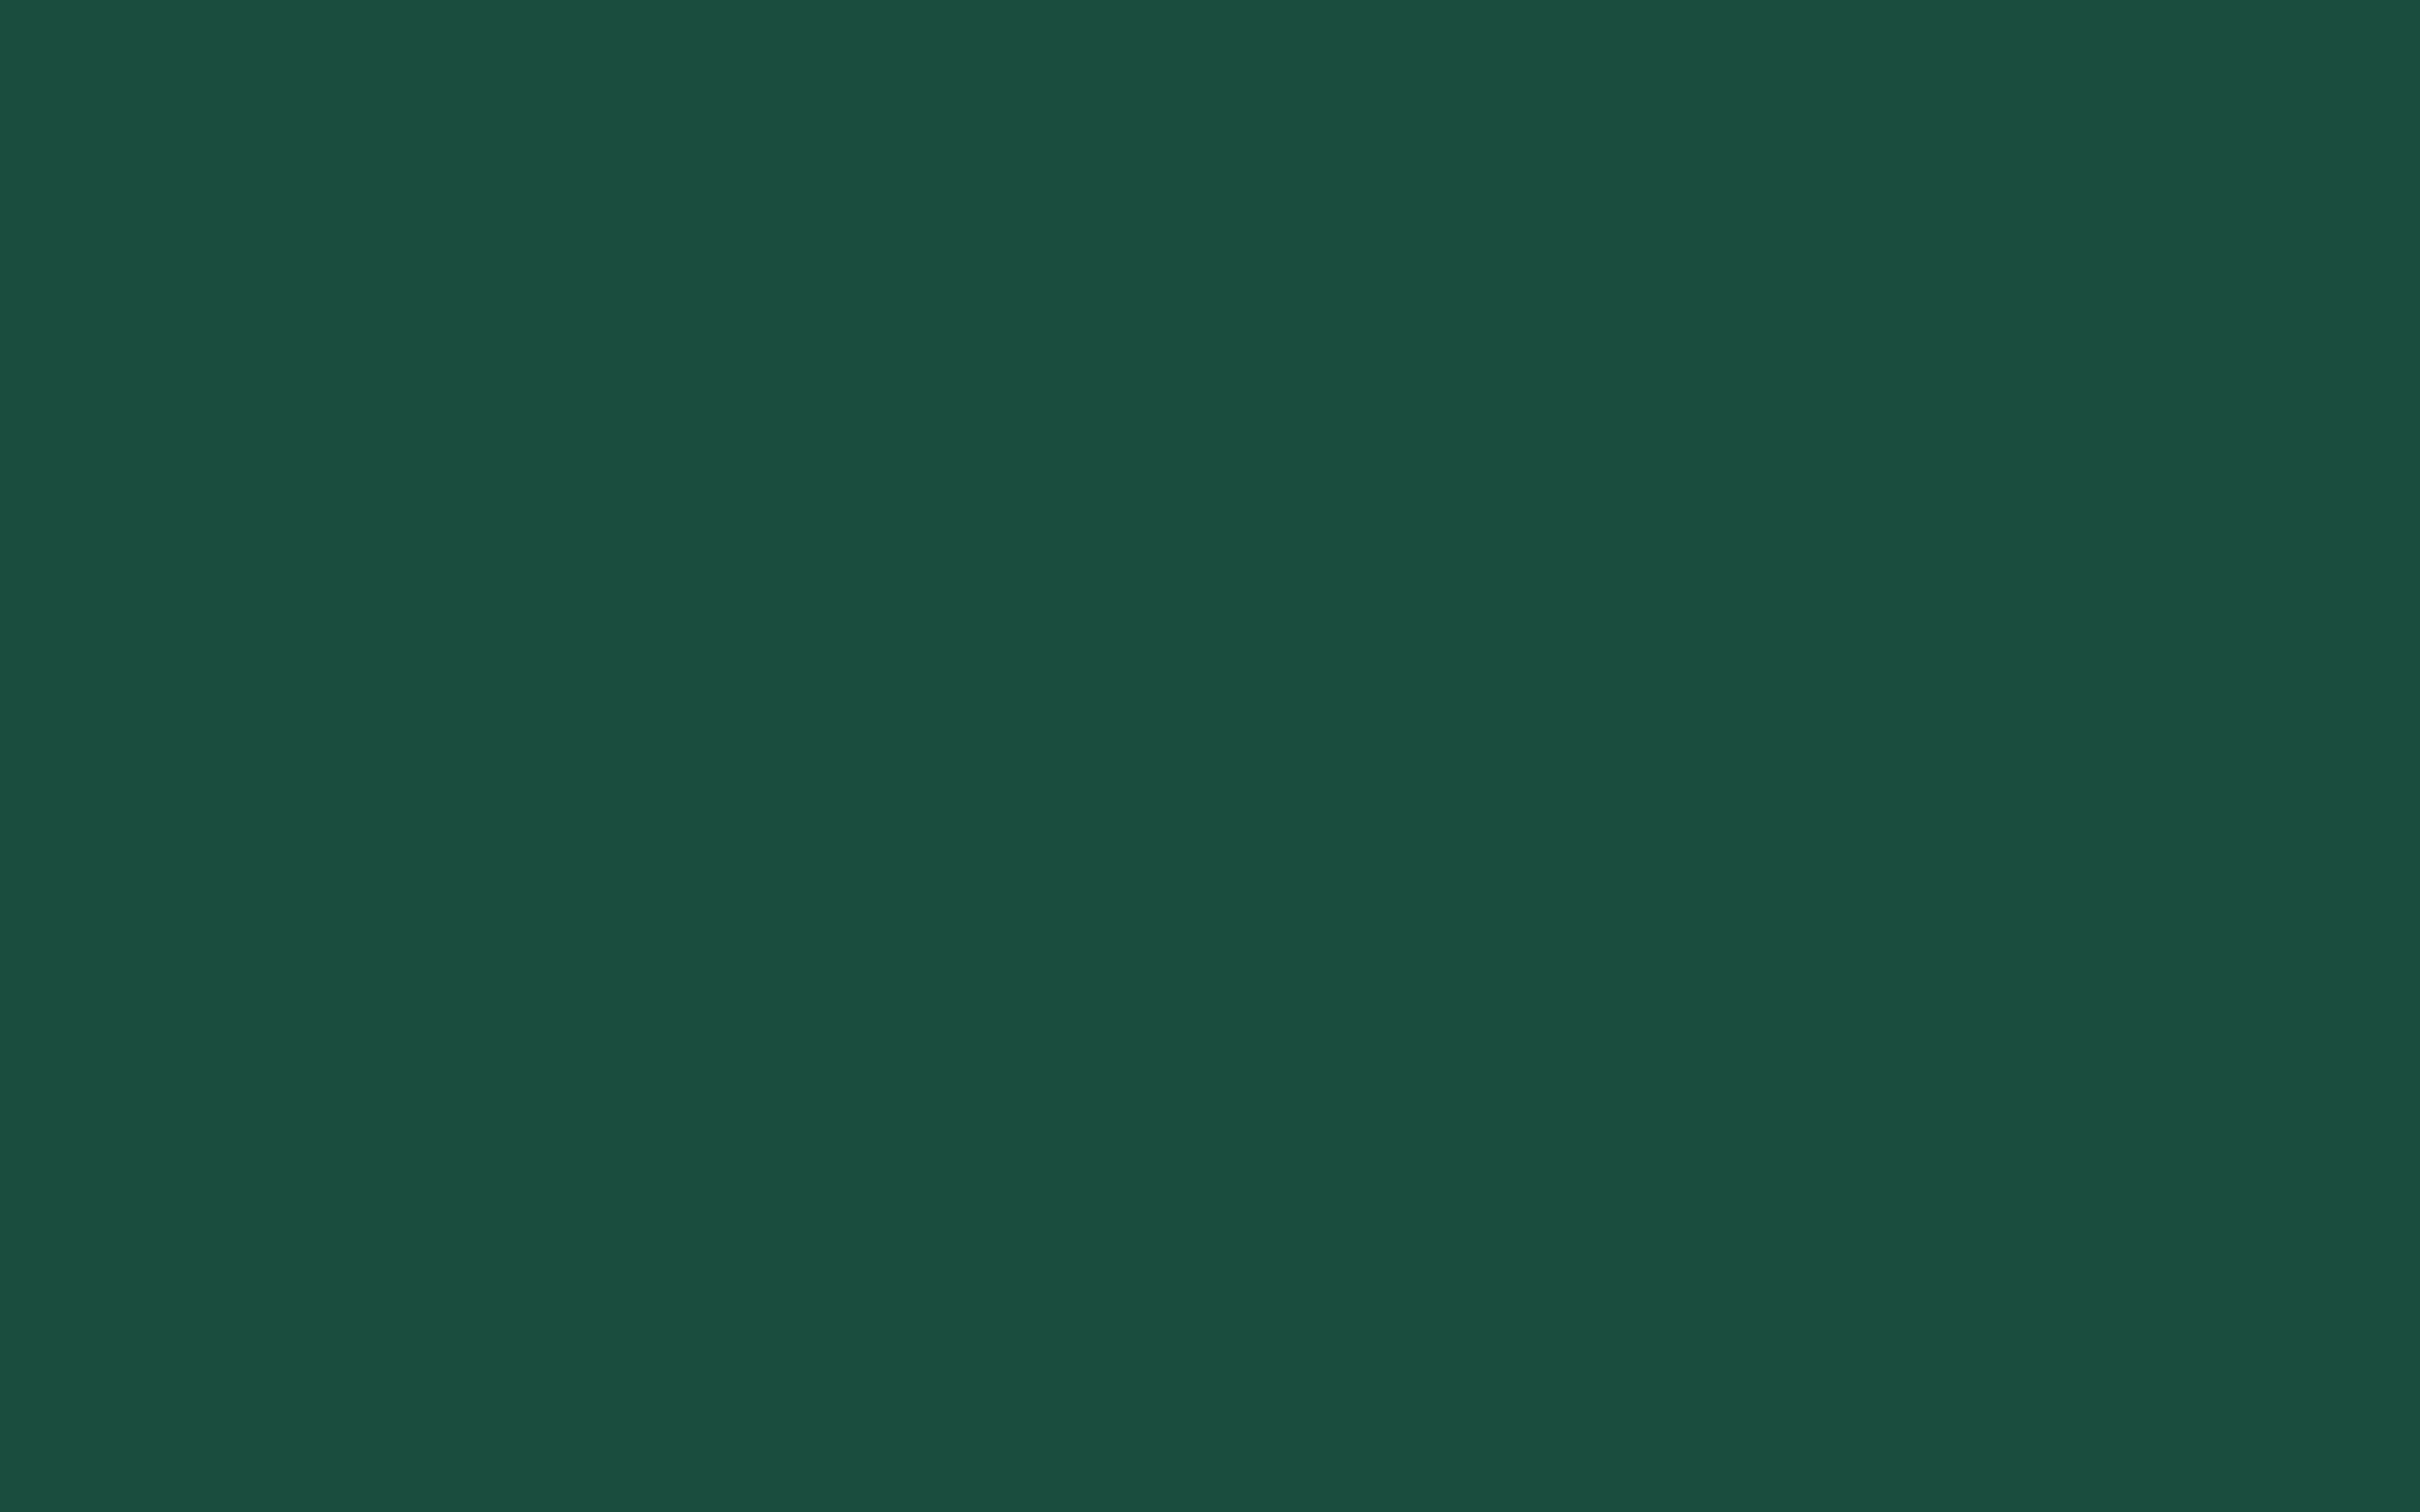 2880x1800 English Green Solid Color Background